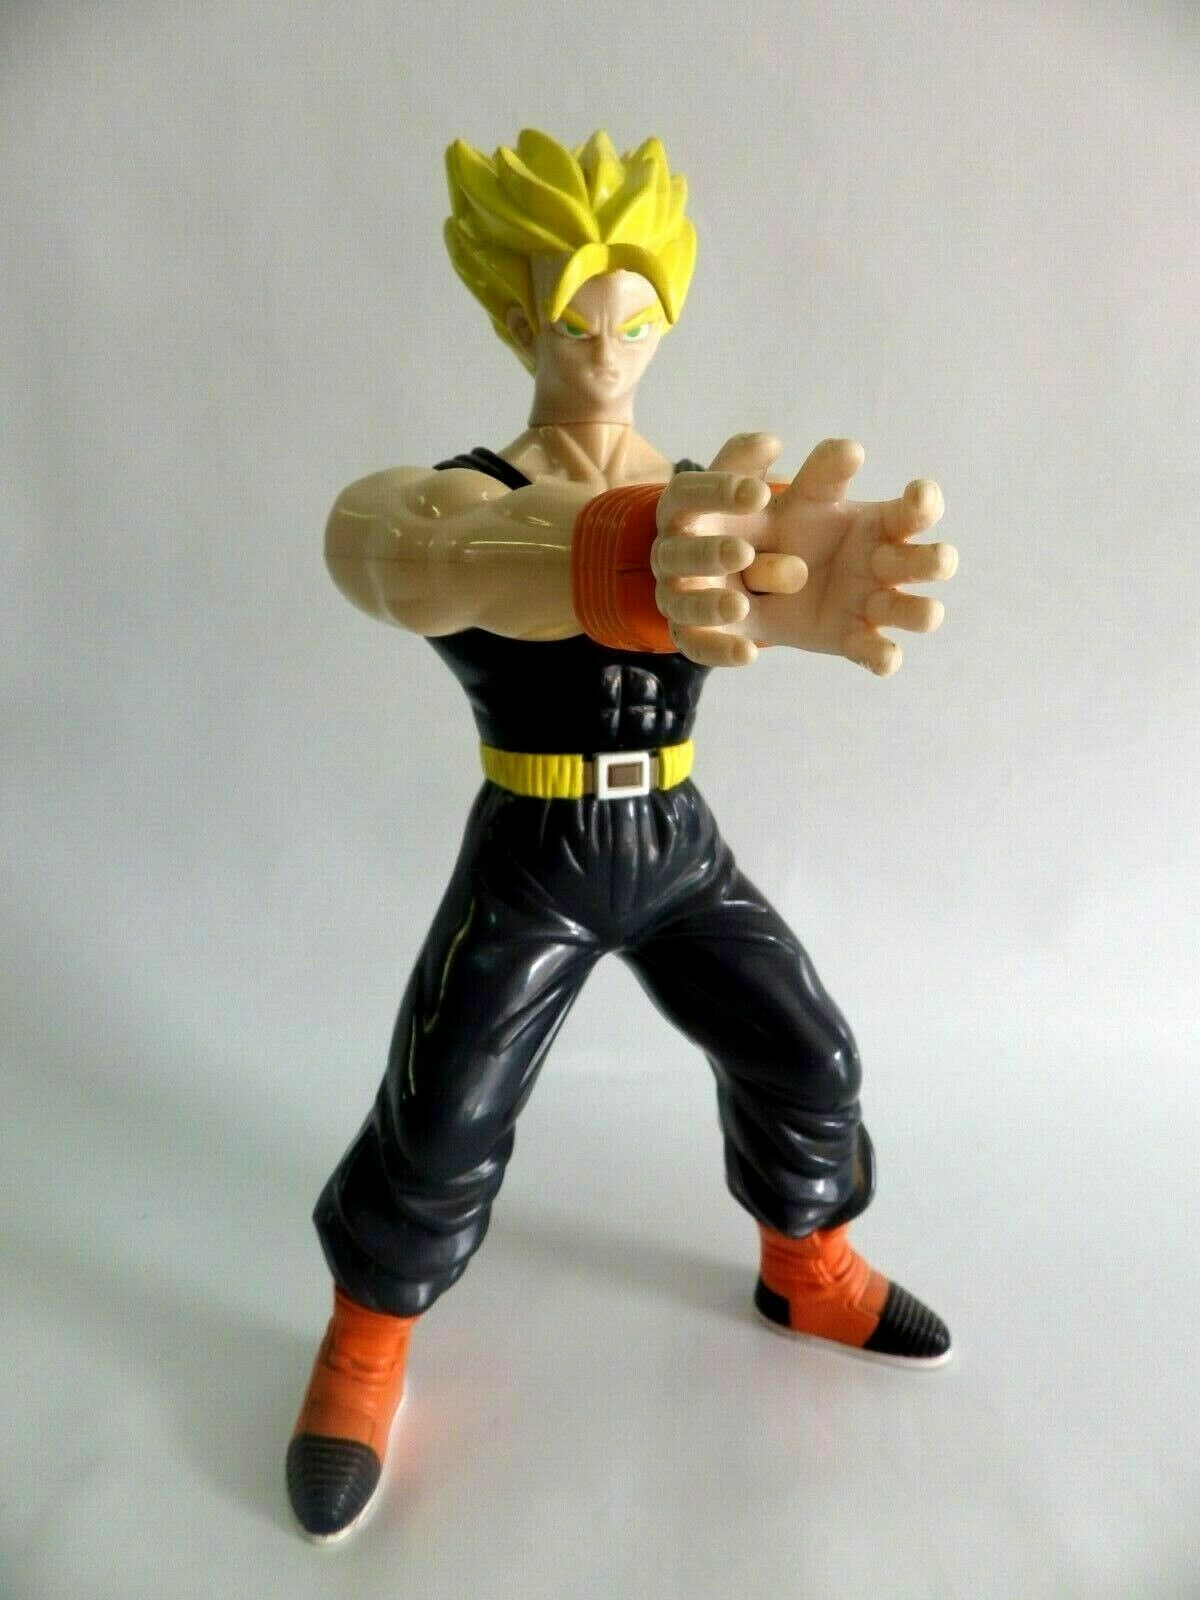 Ultra rare TRUNKS 30 cm Dragon ball z Figura bird studio copyright 1989